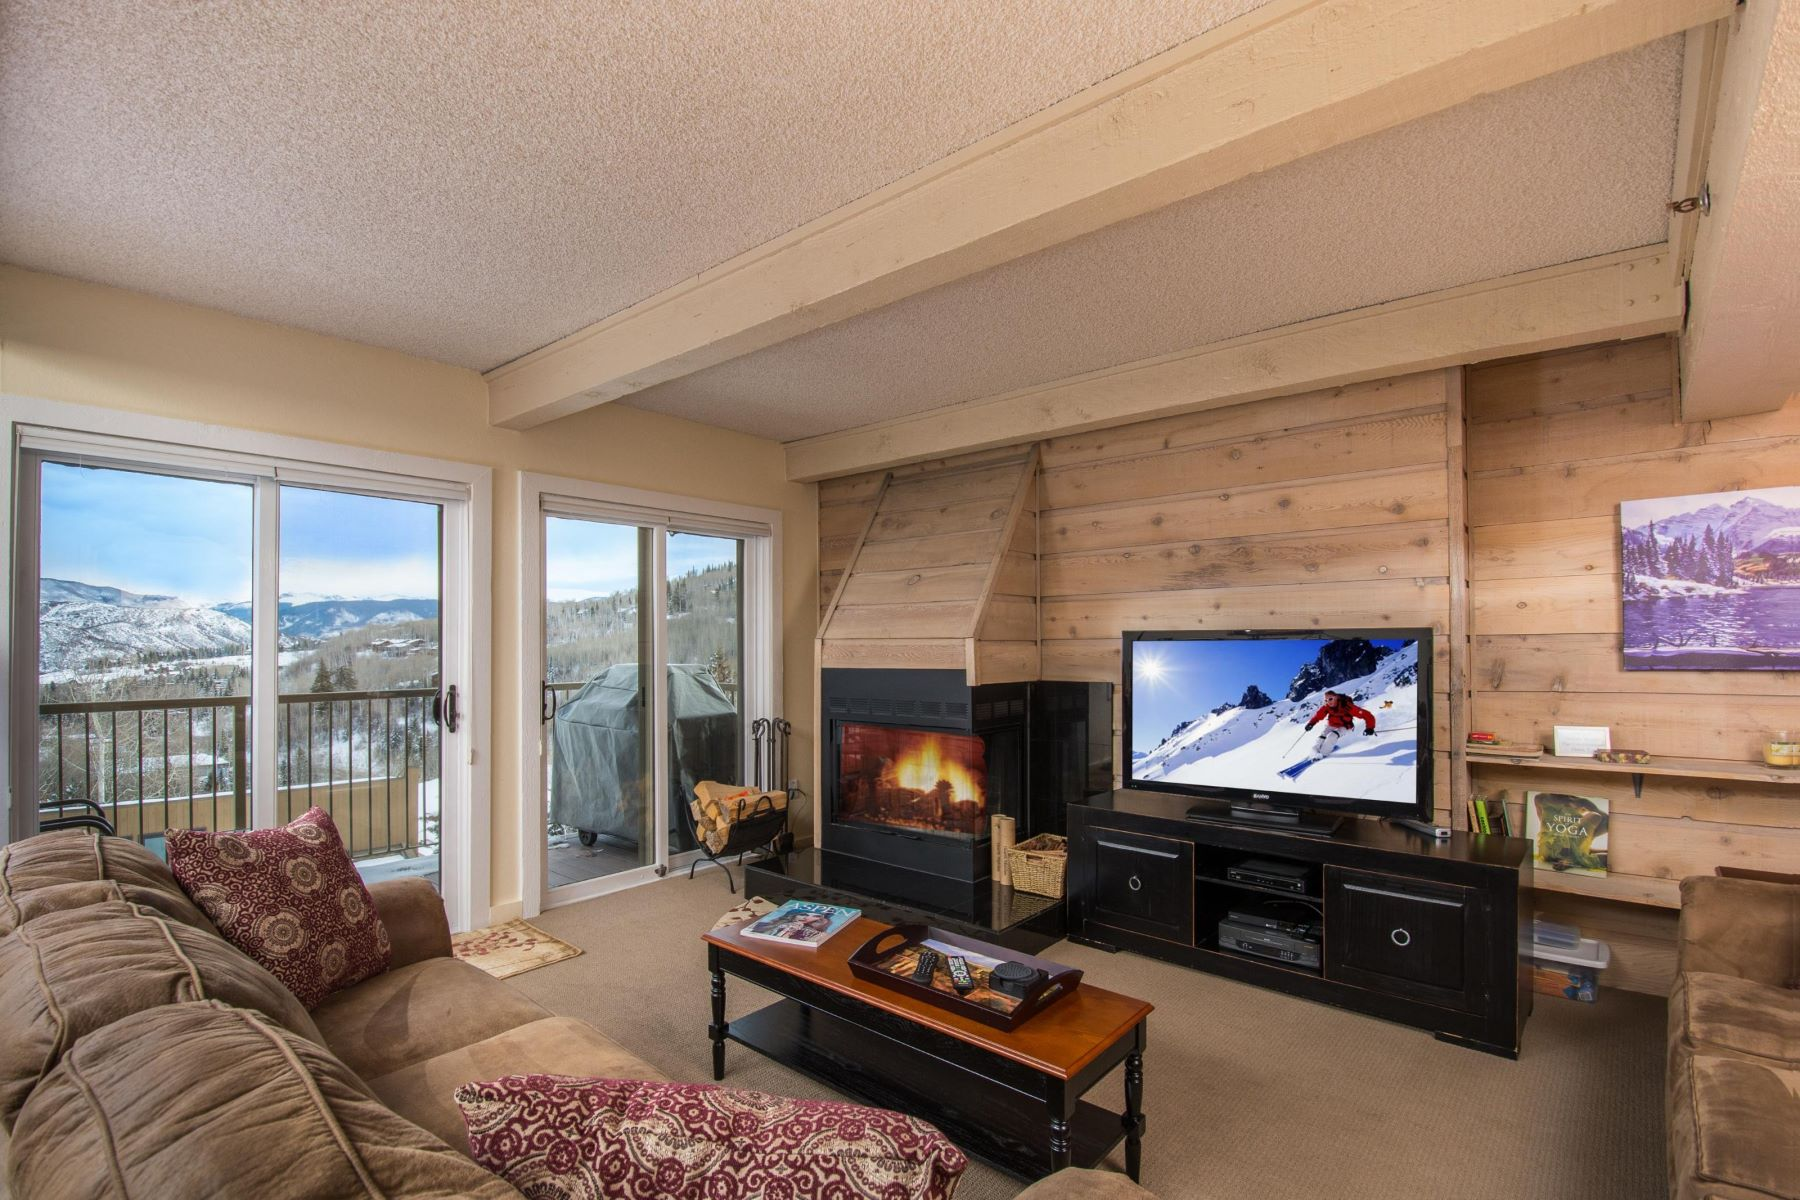 Copropriété pour l Vente à Snowmass Mountain Condominium 55 Upper Woodbridge Road, Unit J-4 Snowmass Village, Colorado, 81615 États-Unis